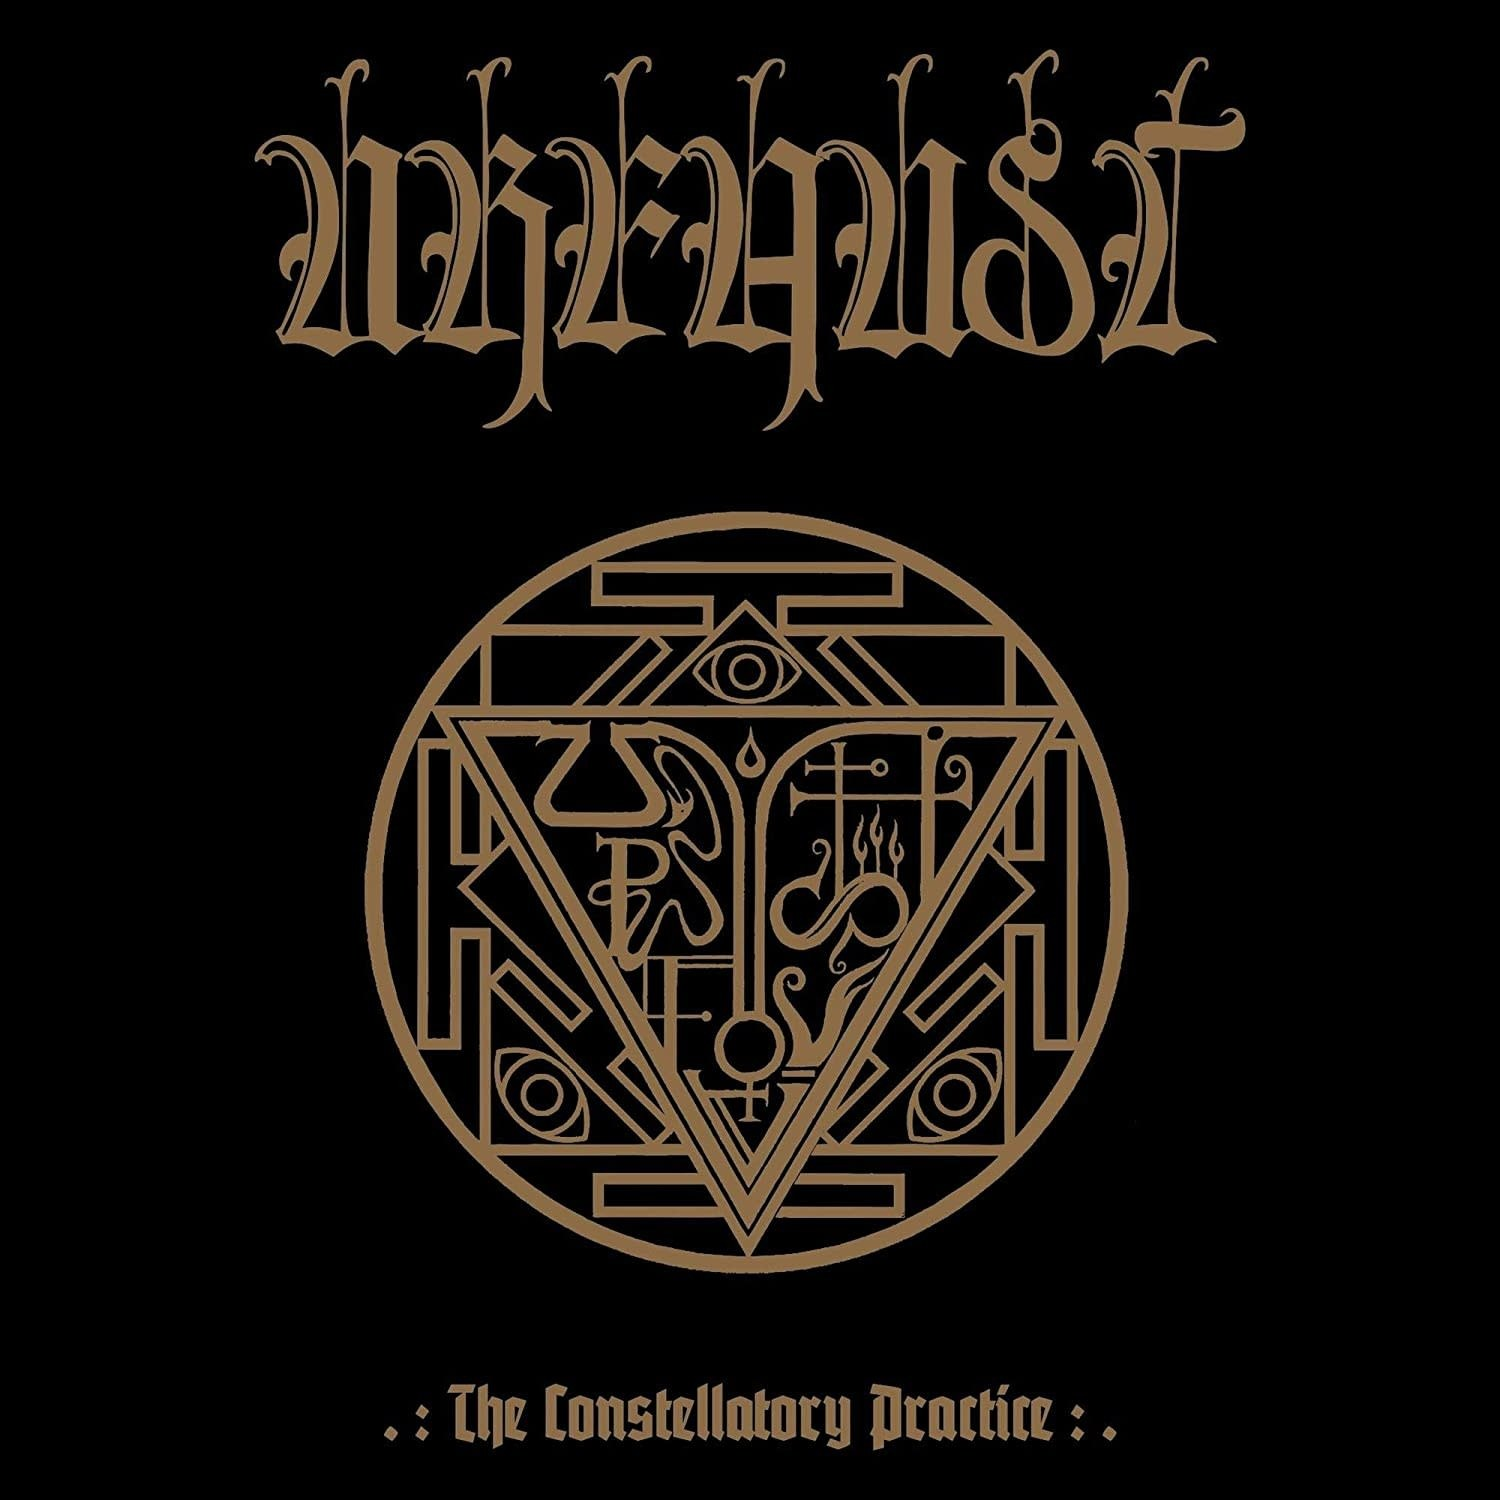 Review for Urfaust - The Constellatory Practice